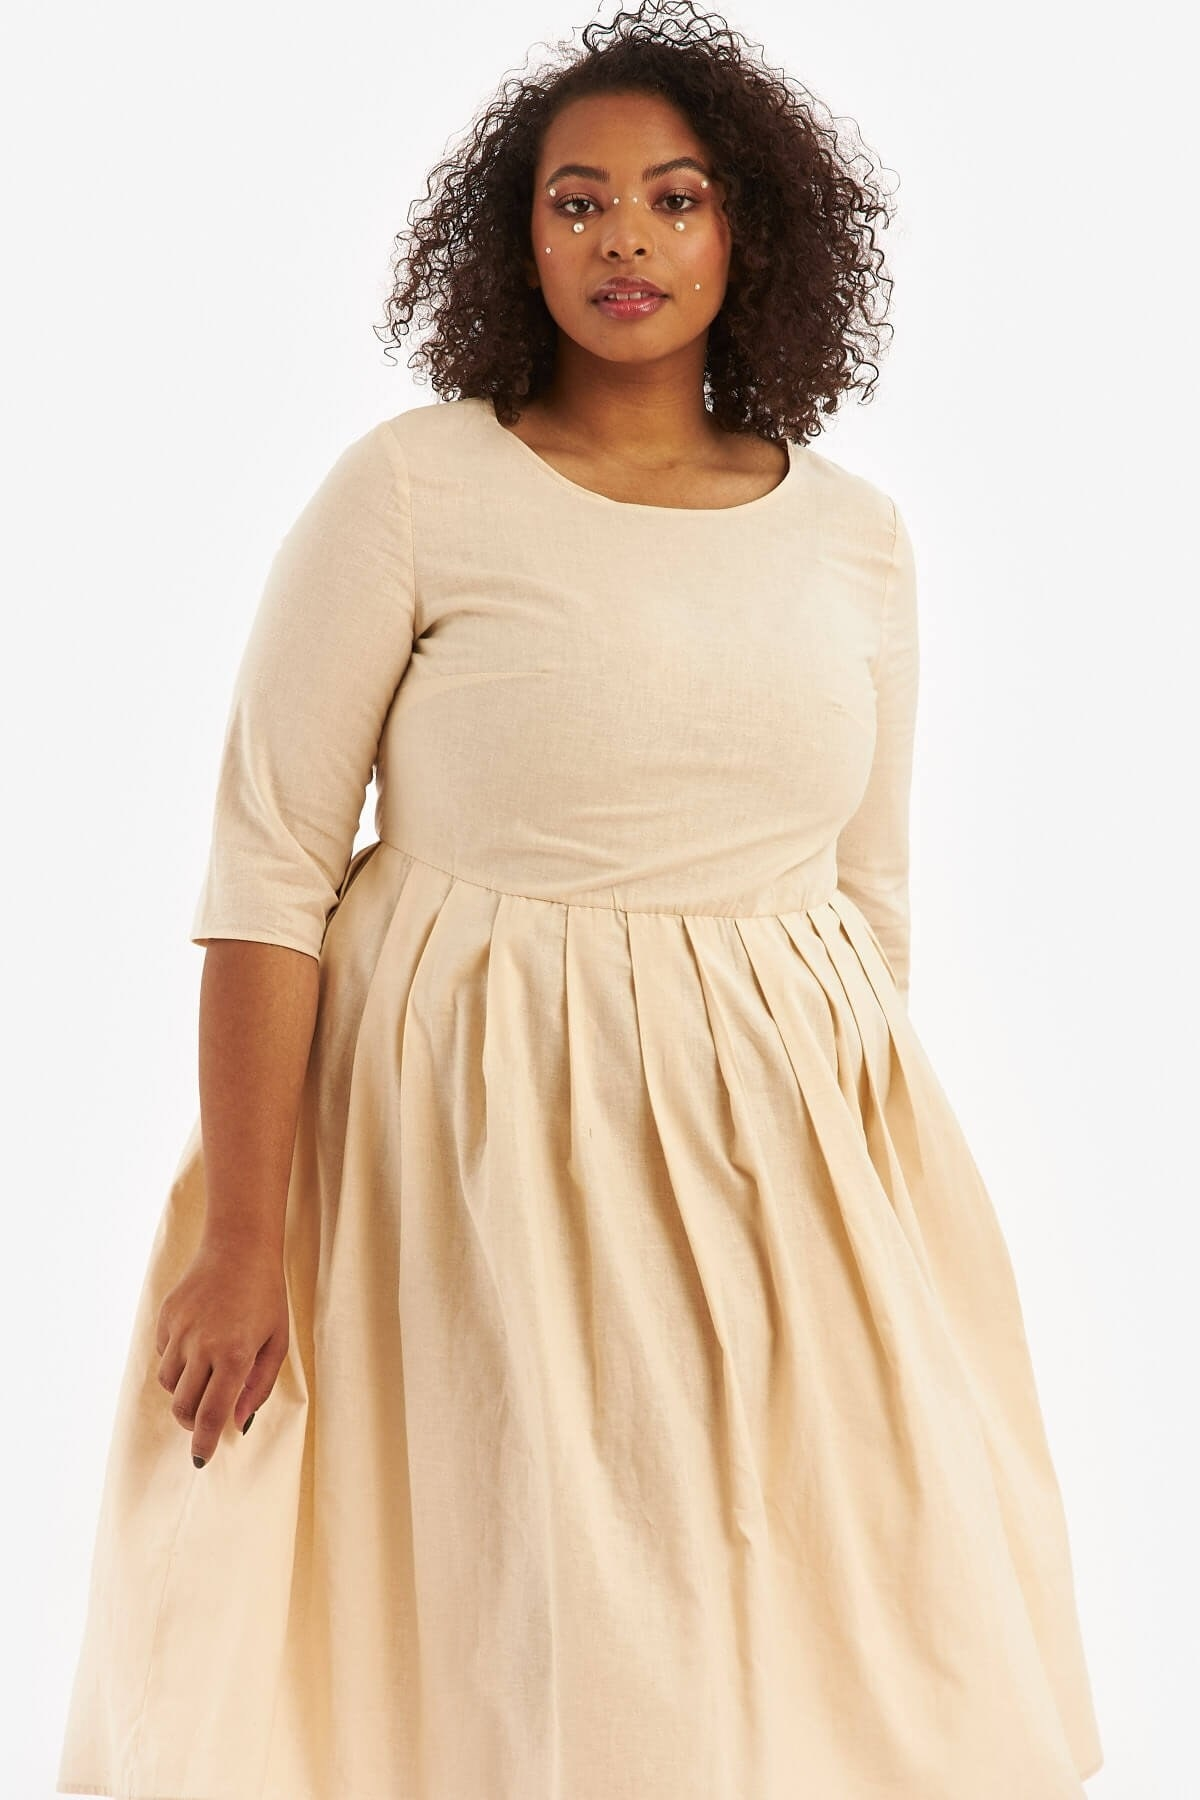 Model in a beige linen dress with 3/4 sleeves that cinches and tapers at waist